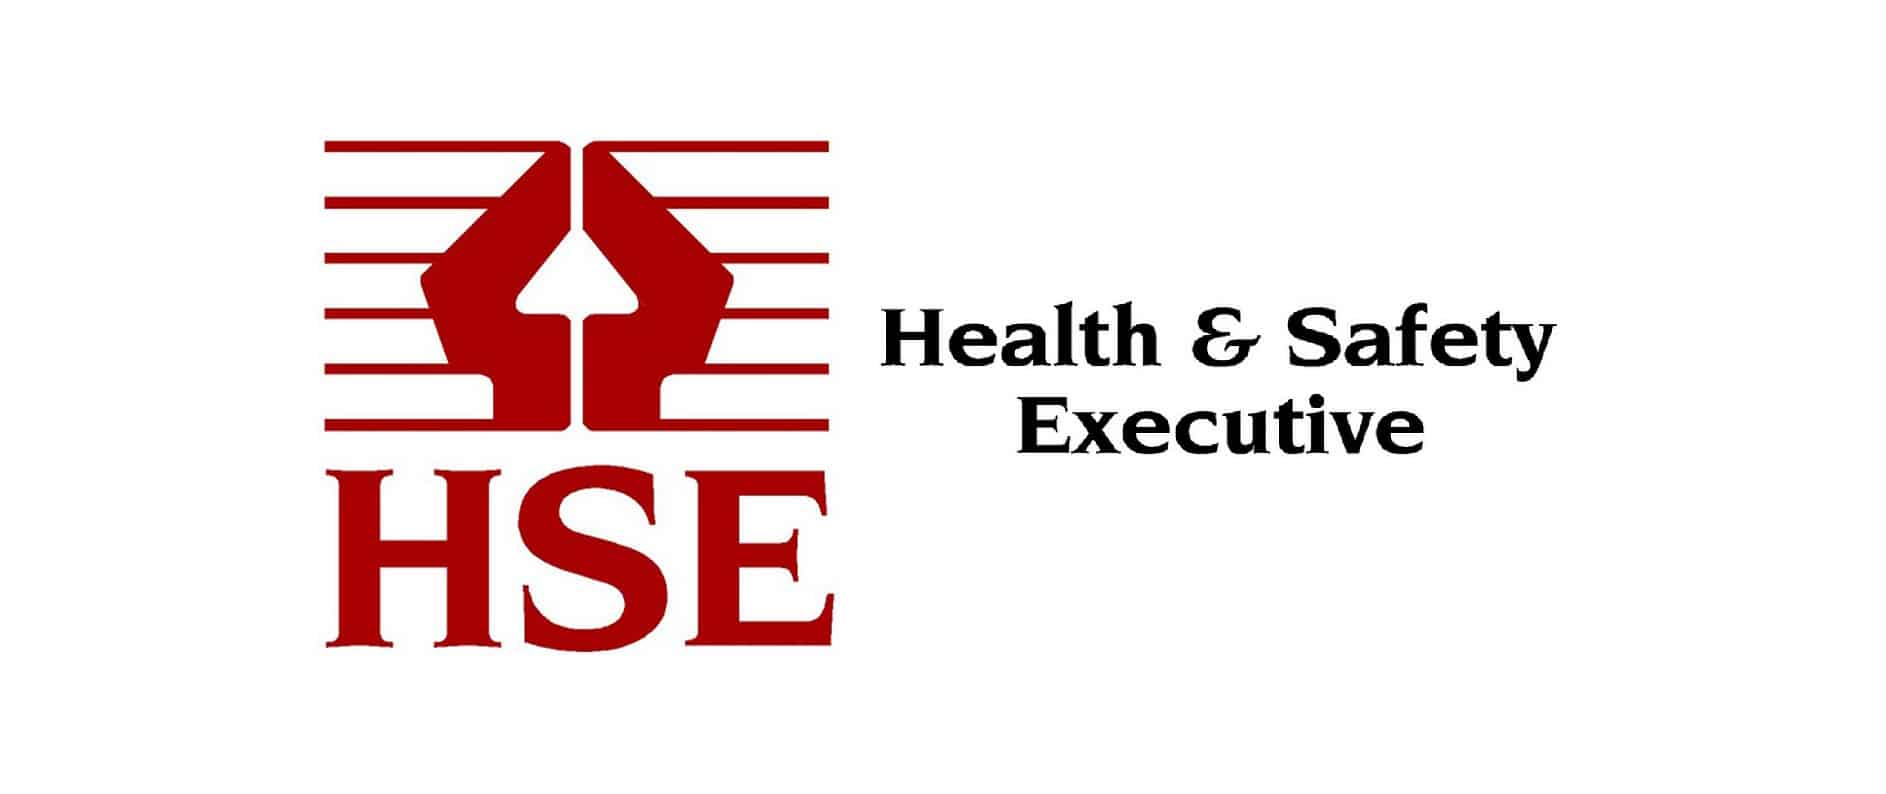 HSE CHECKS DISTRIBUTION BUSINESSES ARE COVID-SECURE